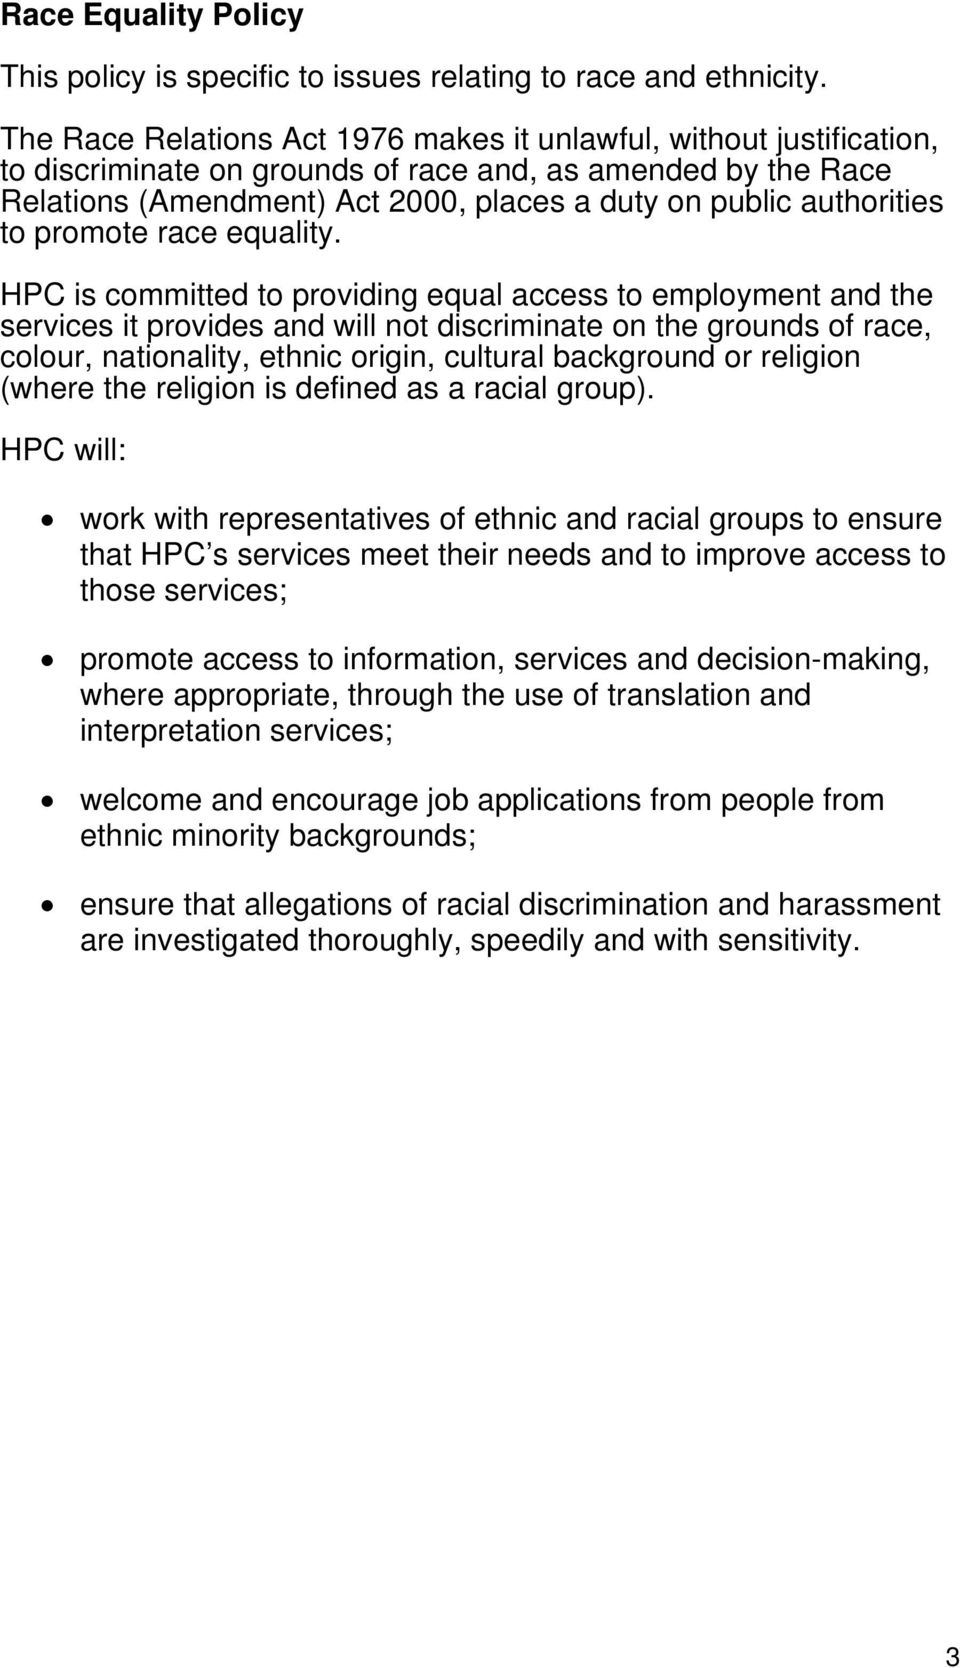 authorities to promote race equality.